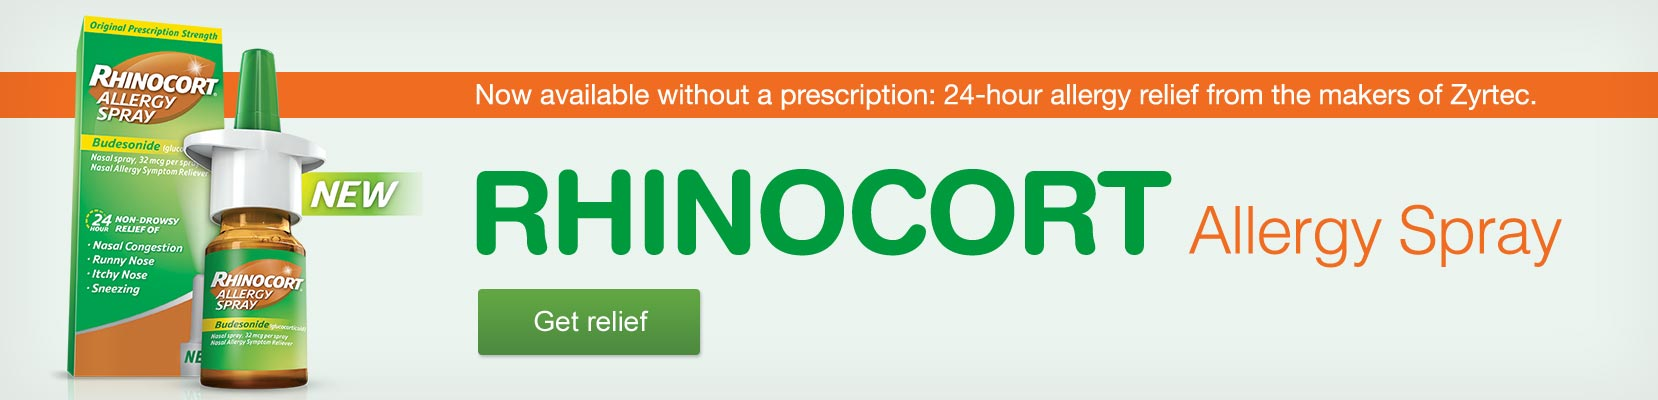 New. Rhinocort Allergy Spray. Now available without a prescription: 24-hour allergy relief from the makers of Zyrtec. Get relief.